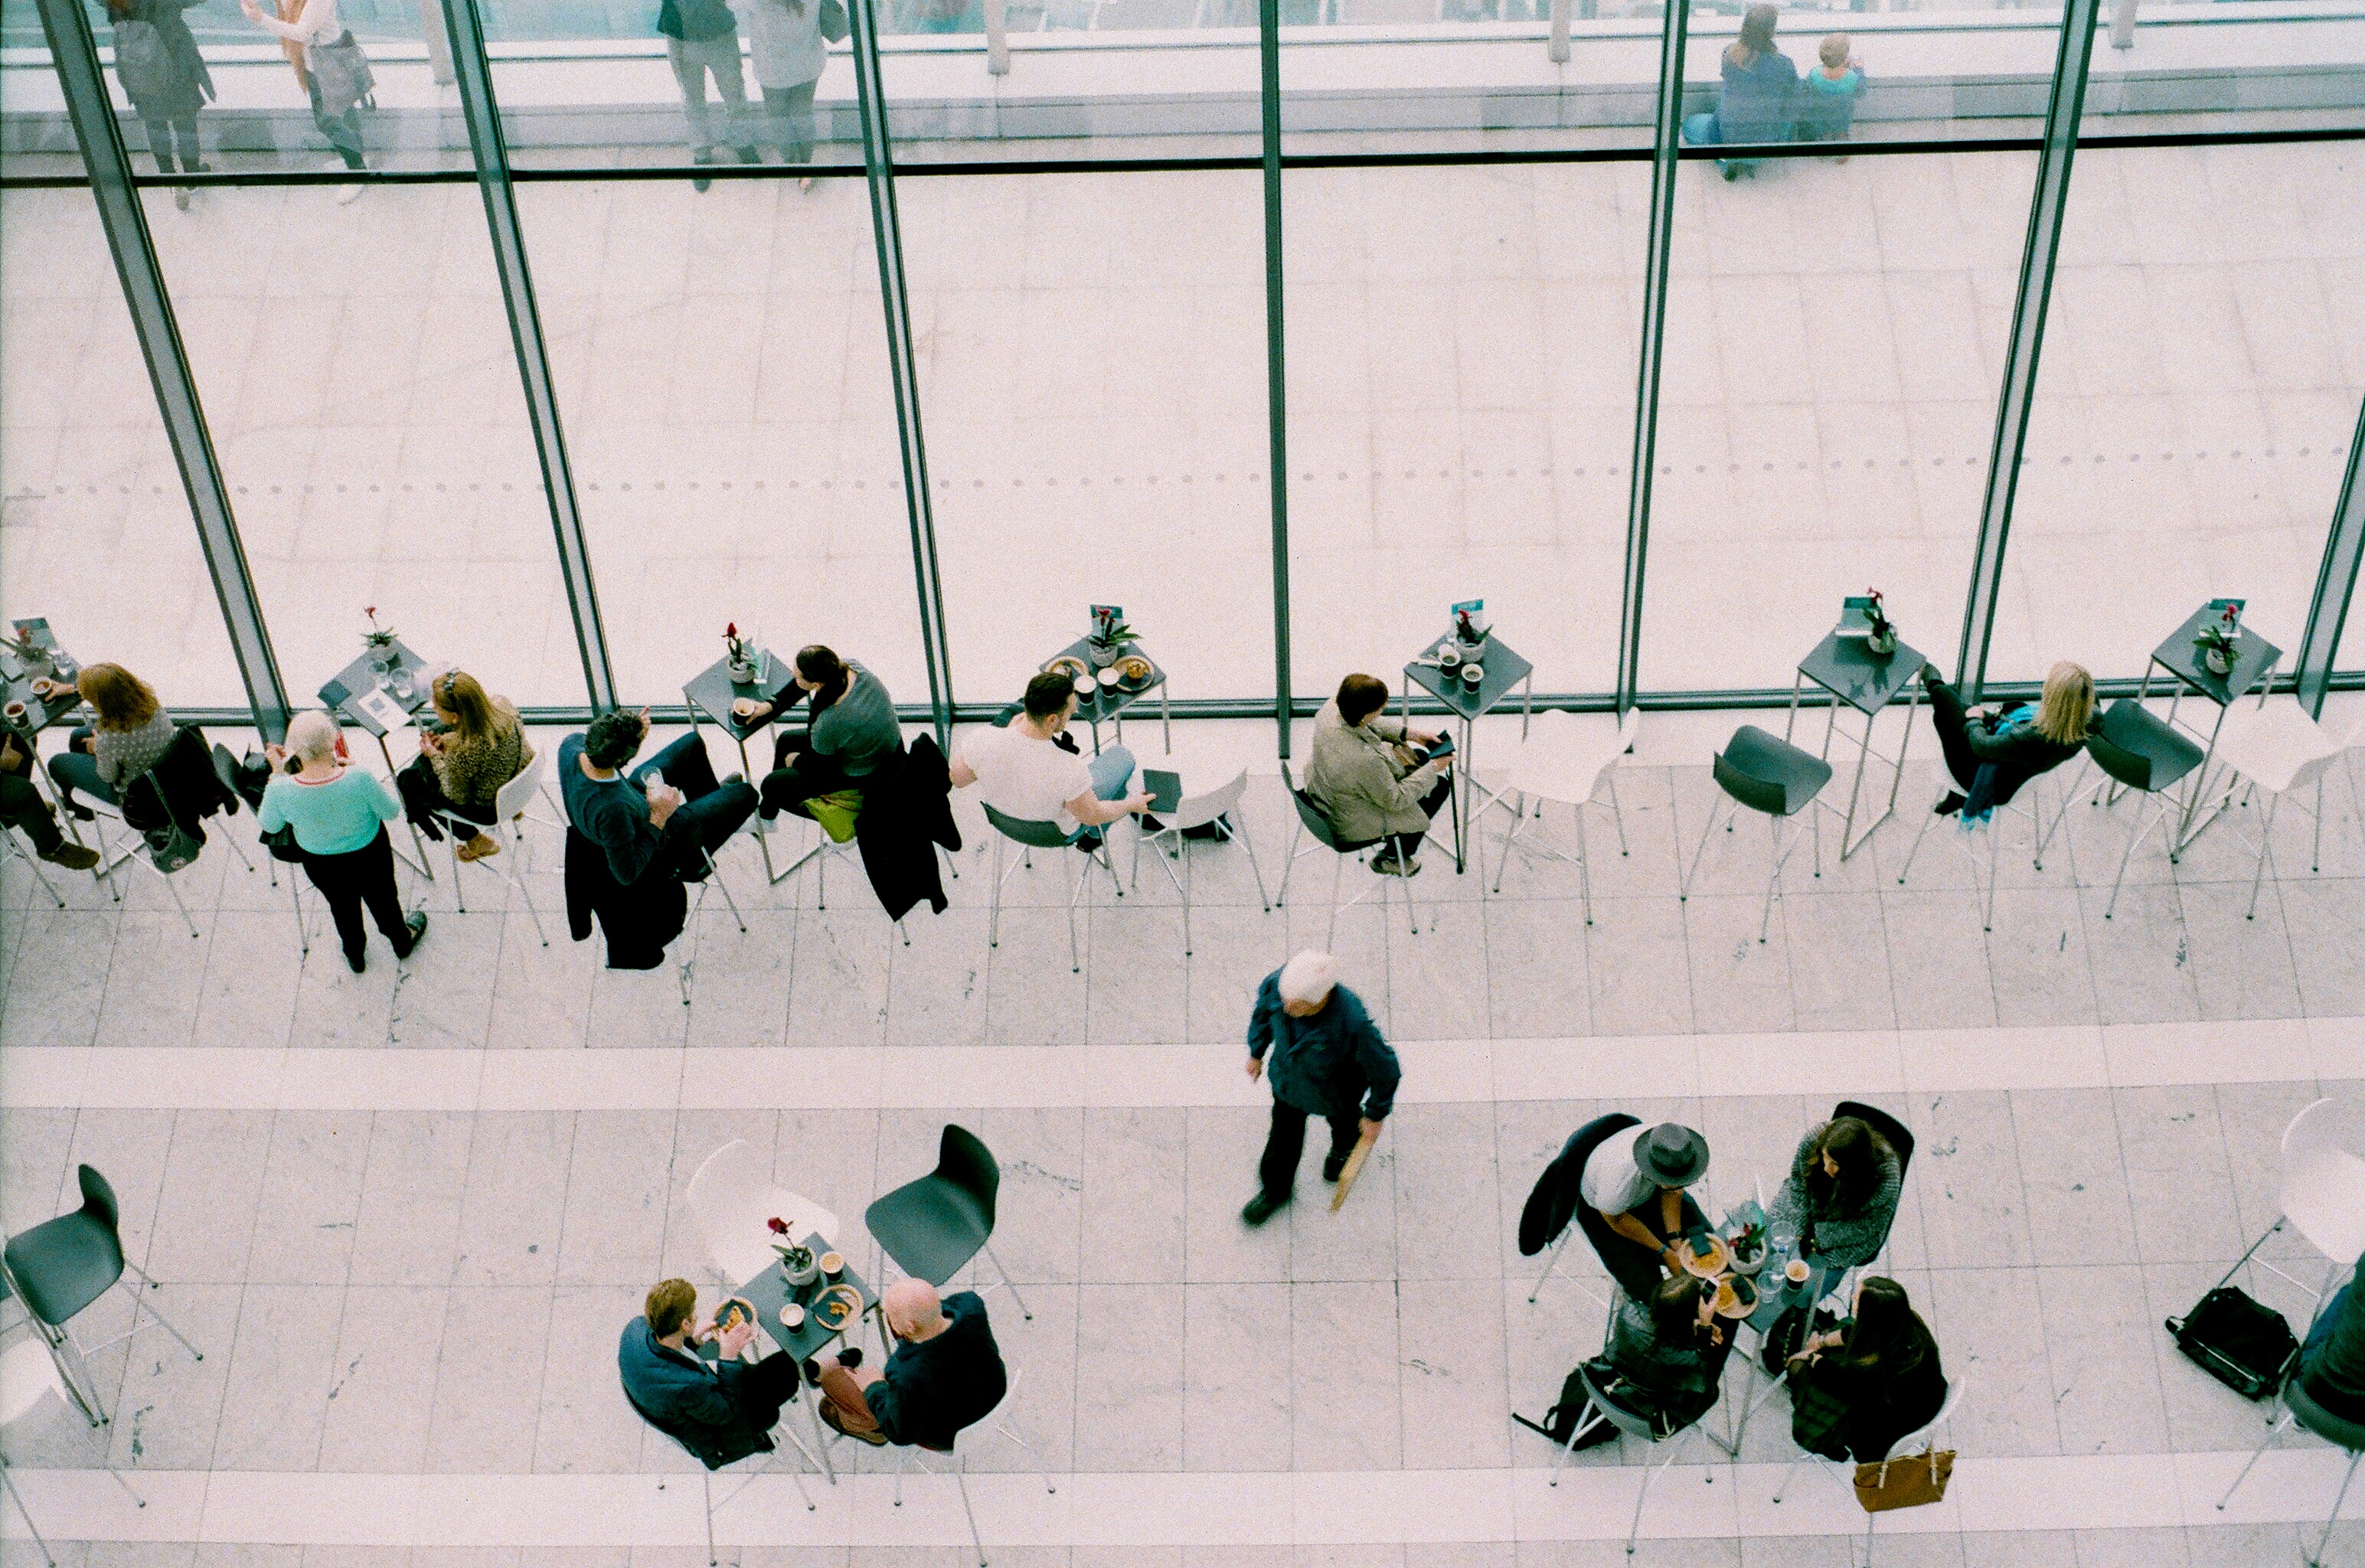 How to Promote Inclusivity in the Workplace